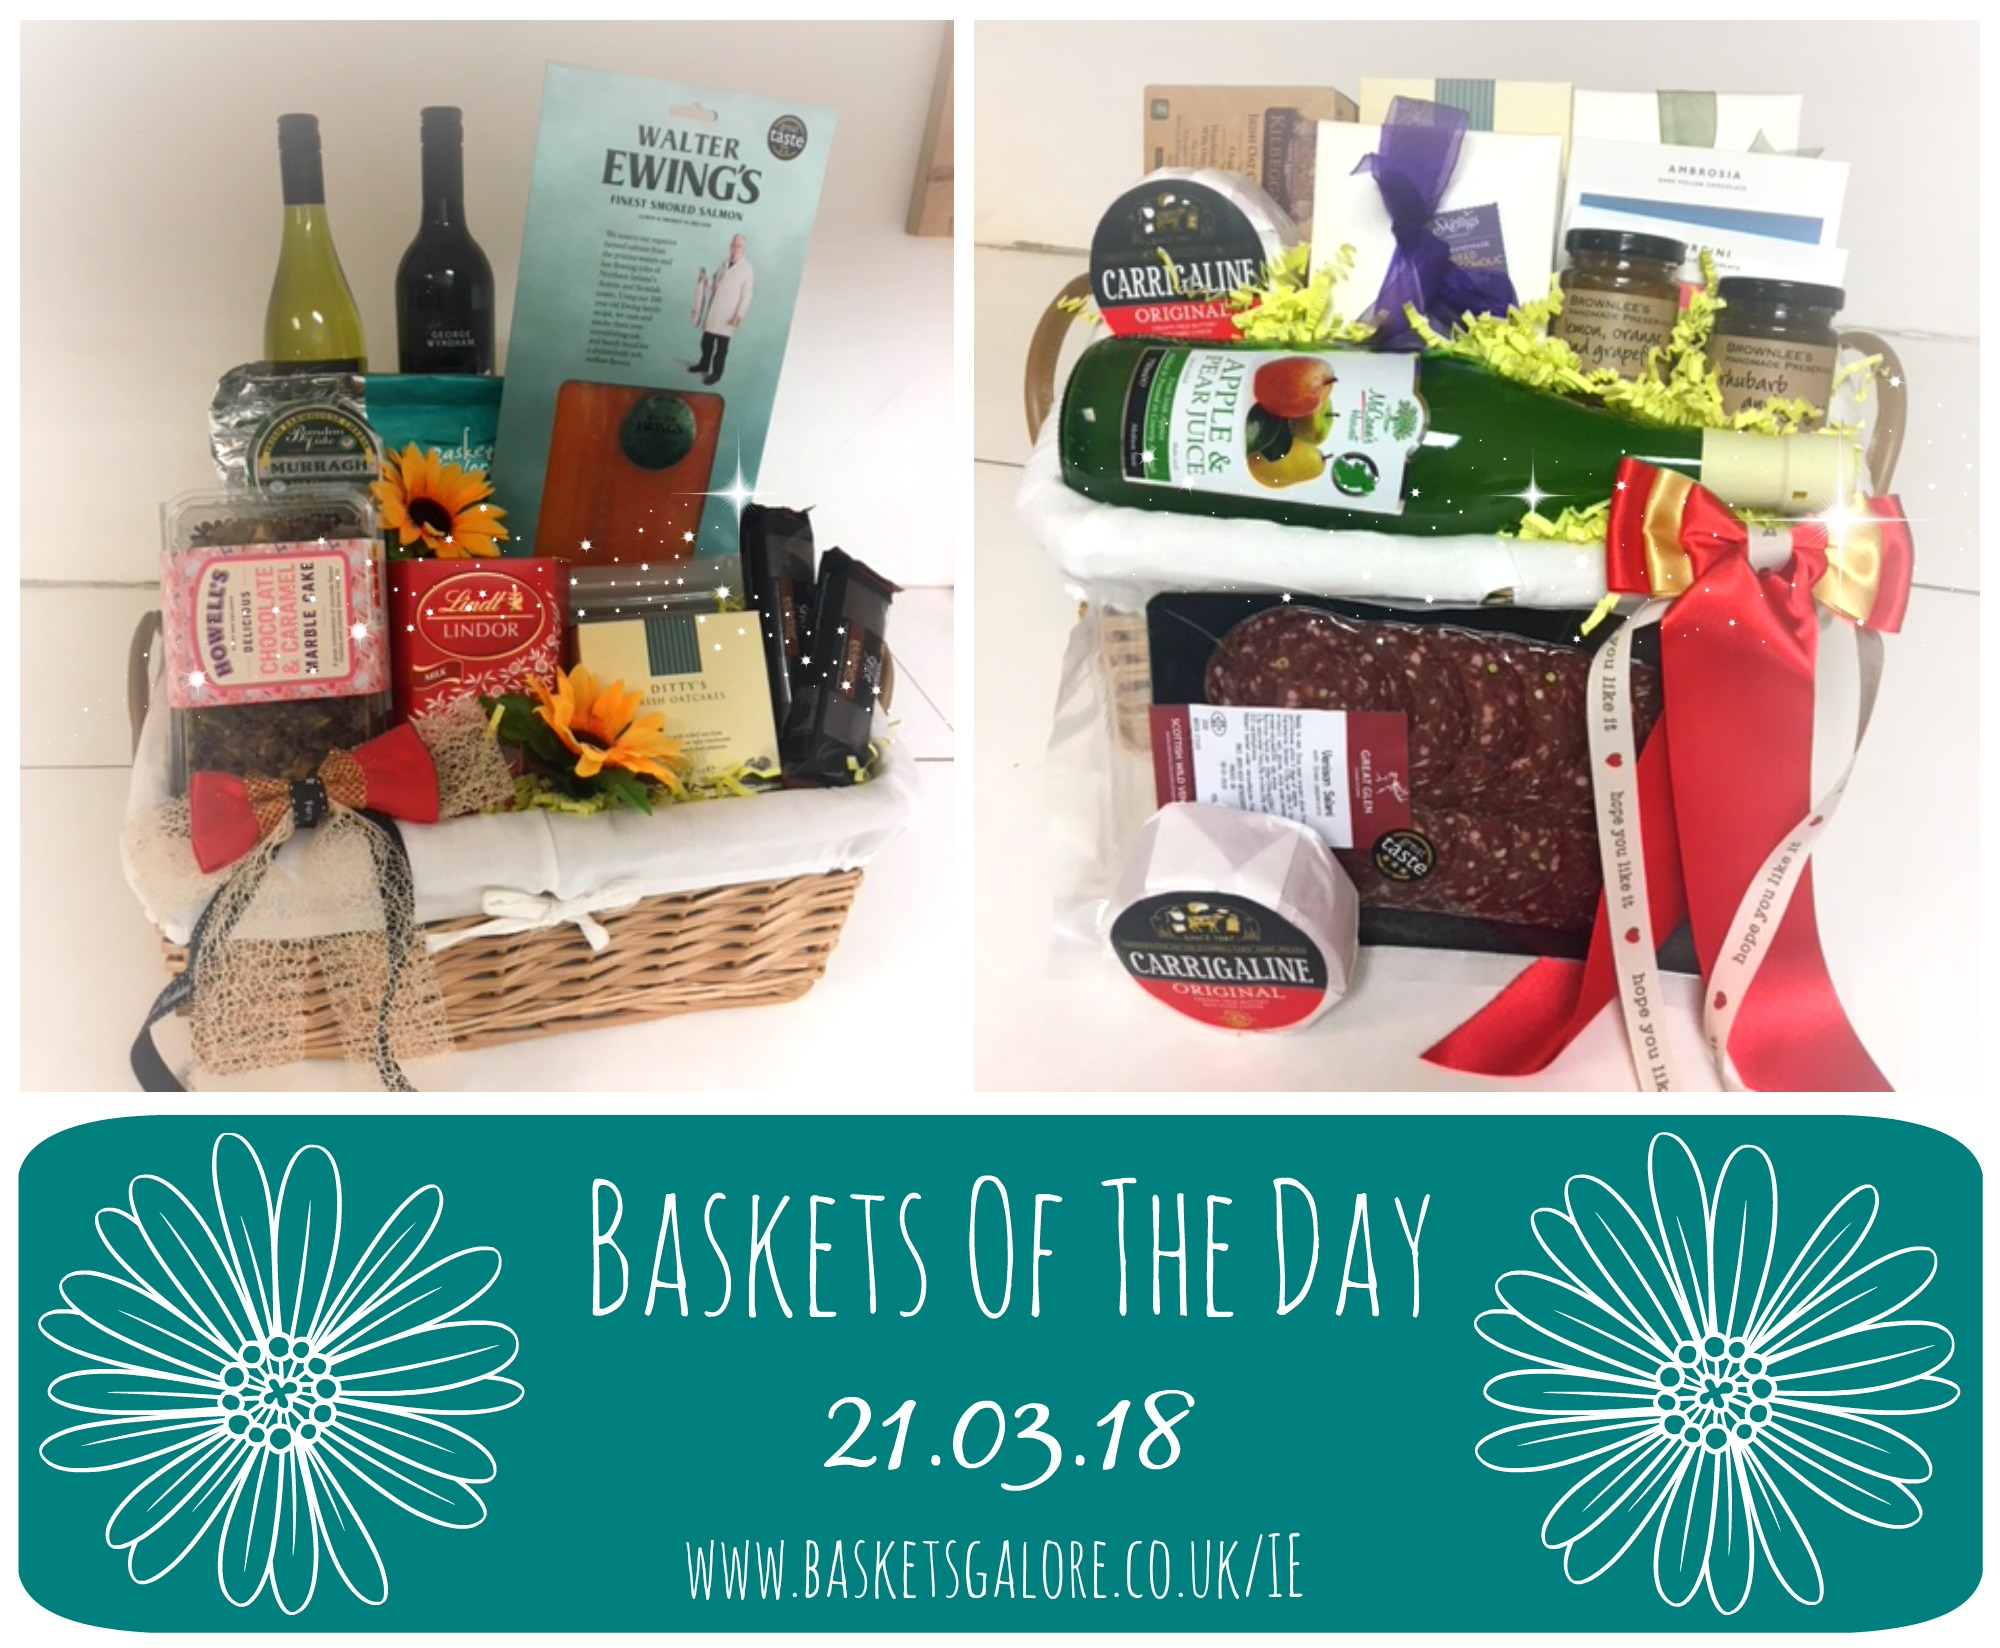 Baskets Galore's Customer Gifts – Gift Basket of the Day 21.03.18